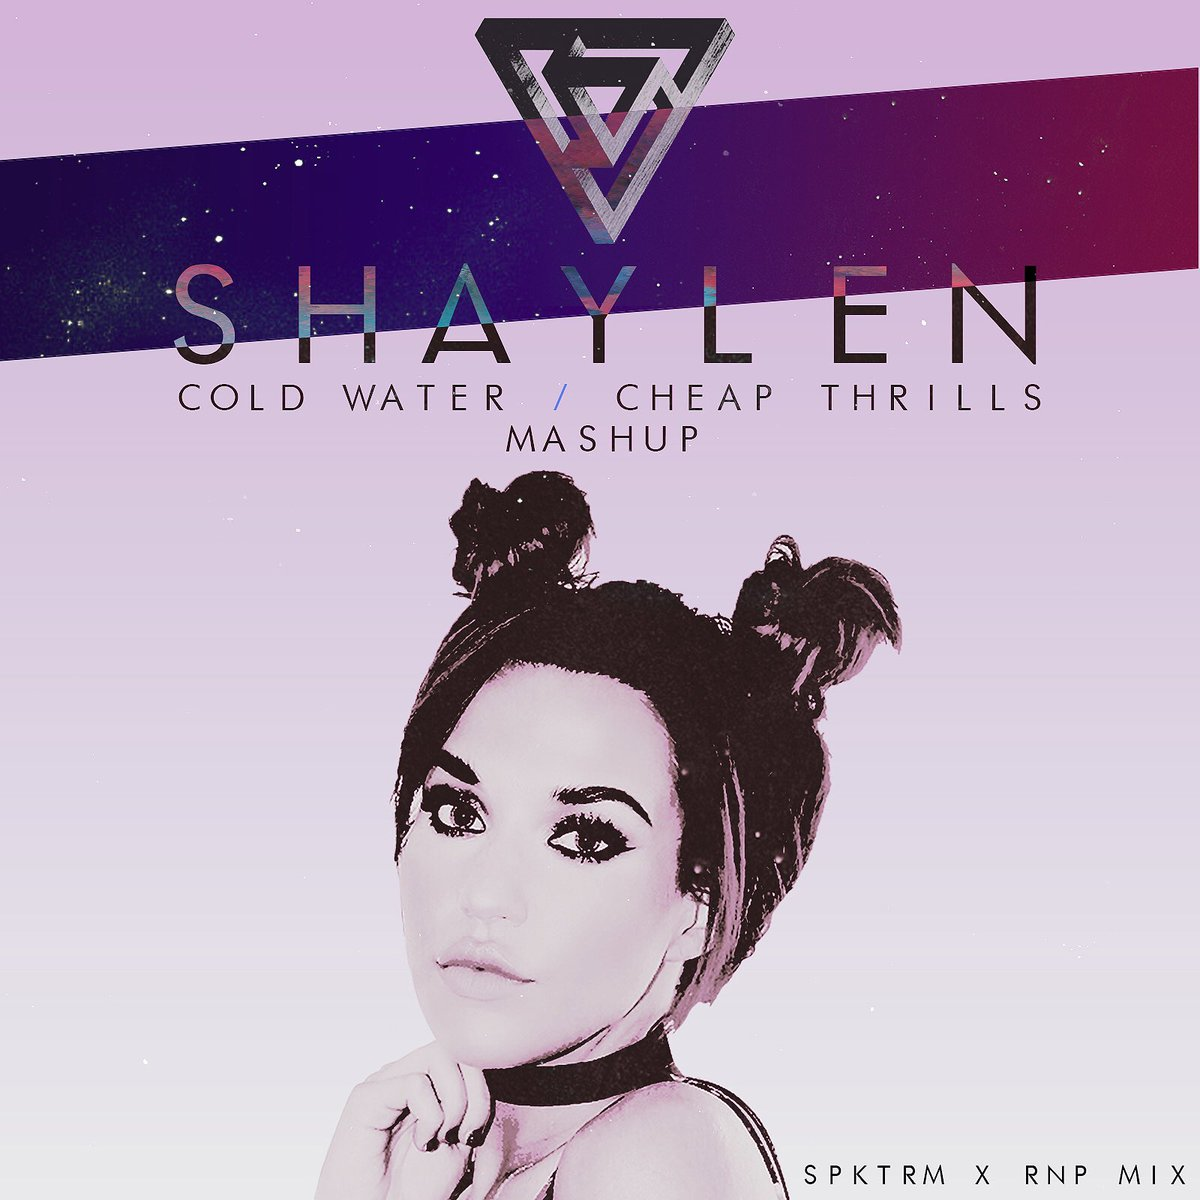 @ShaylenOfficial killed it in this mashup I produced w/ @syremusic @RNPofficial  https://t.co/Y01OTl57yD https://t.co/pjcHPXfHaC